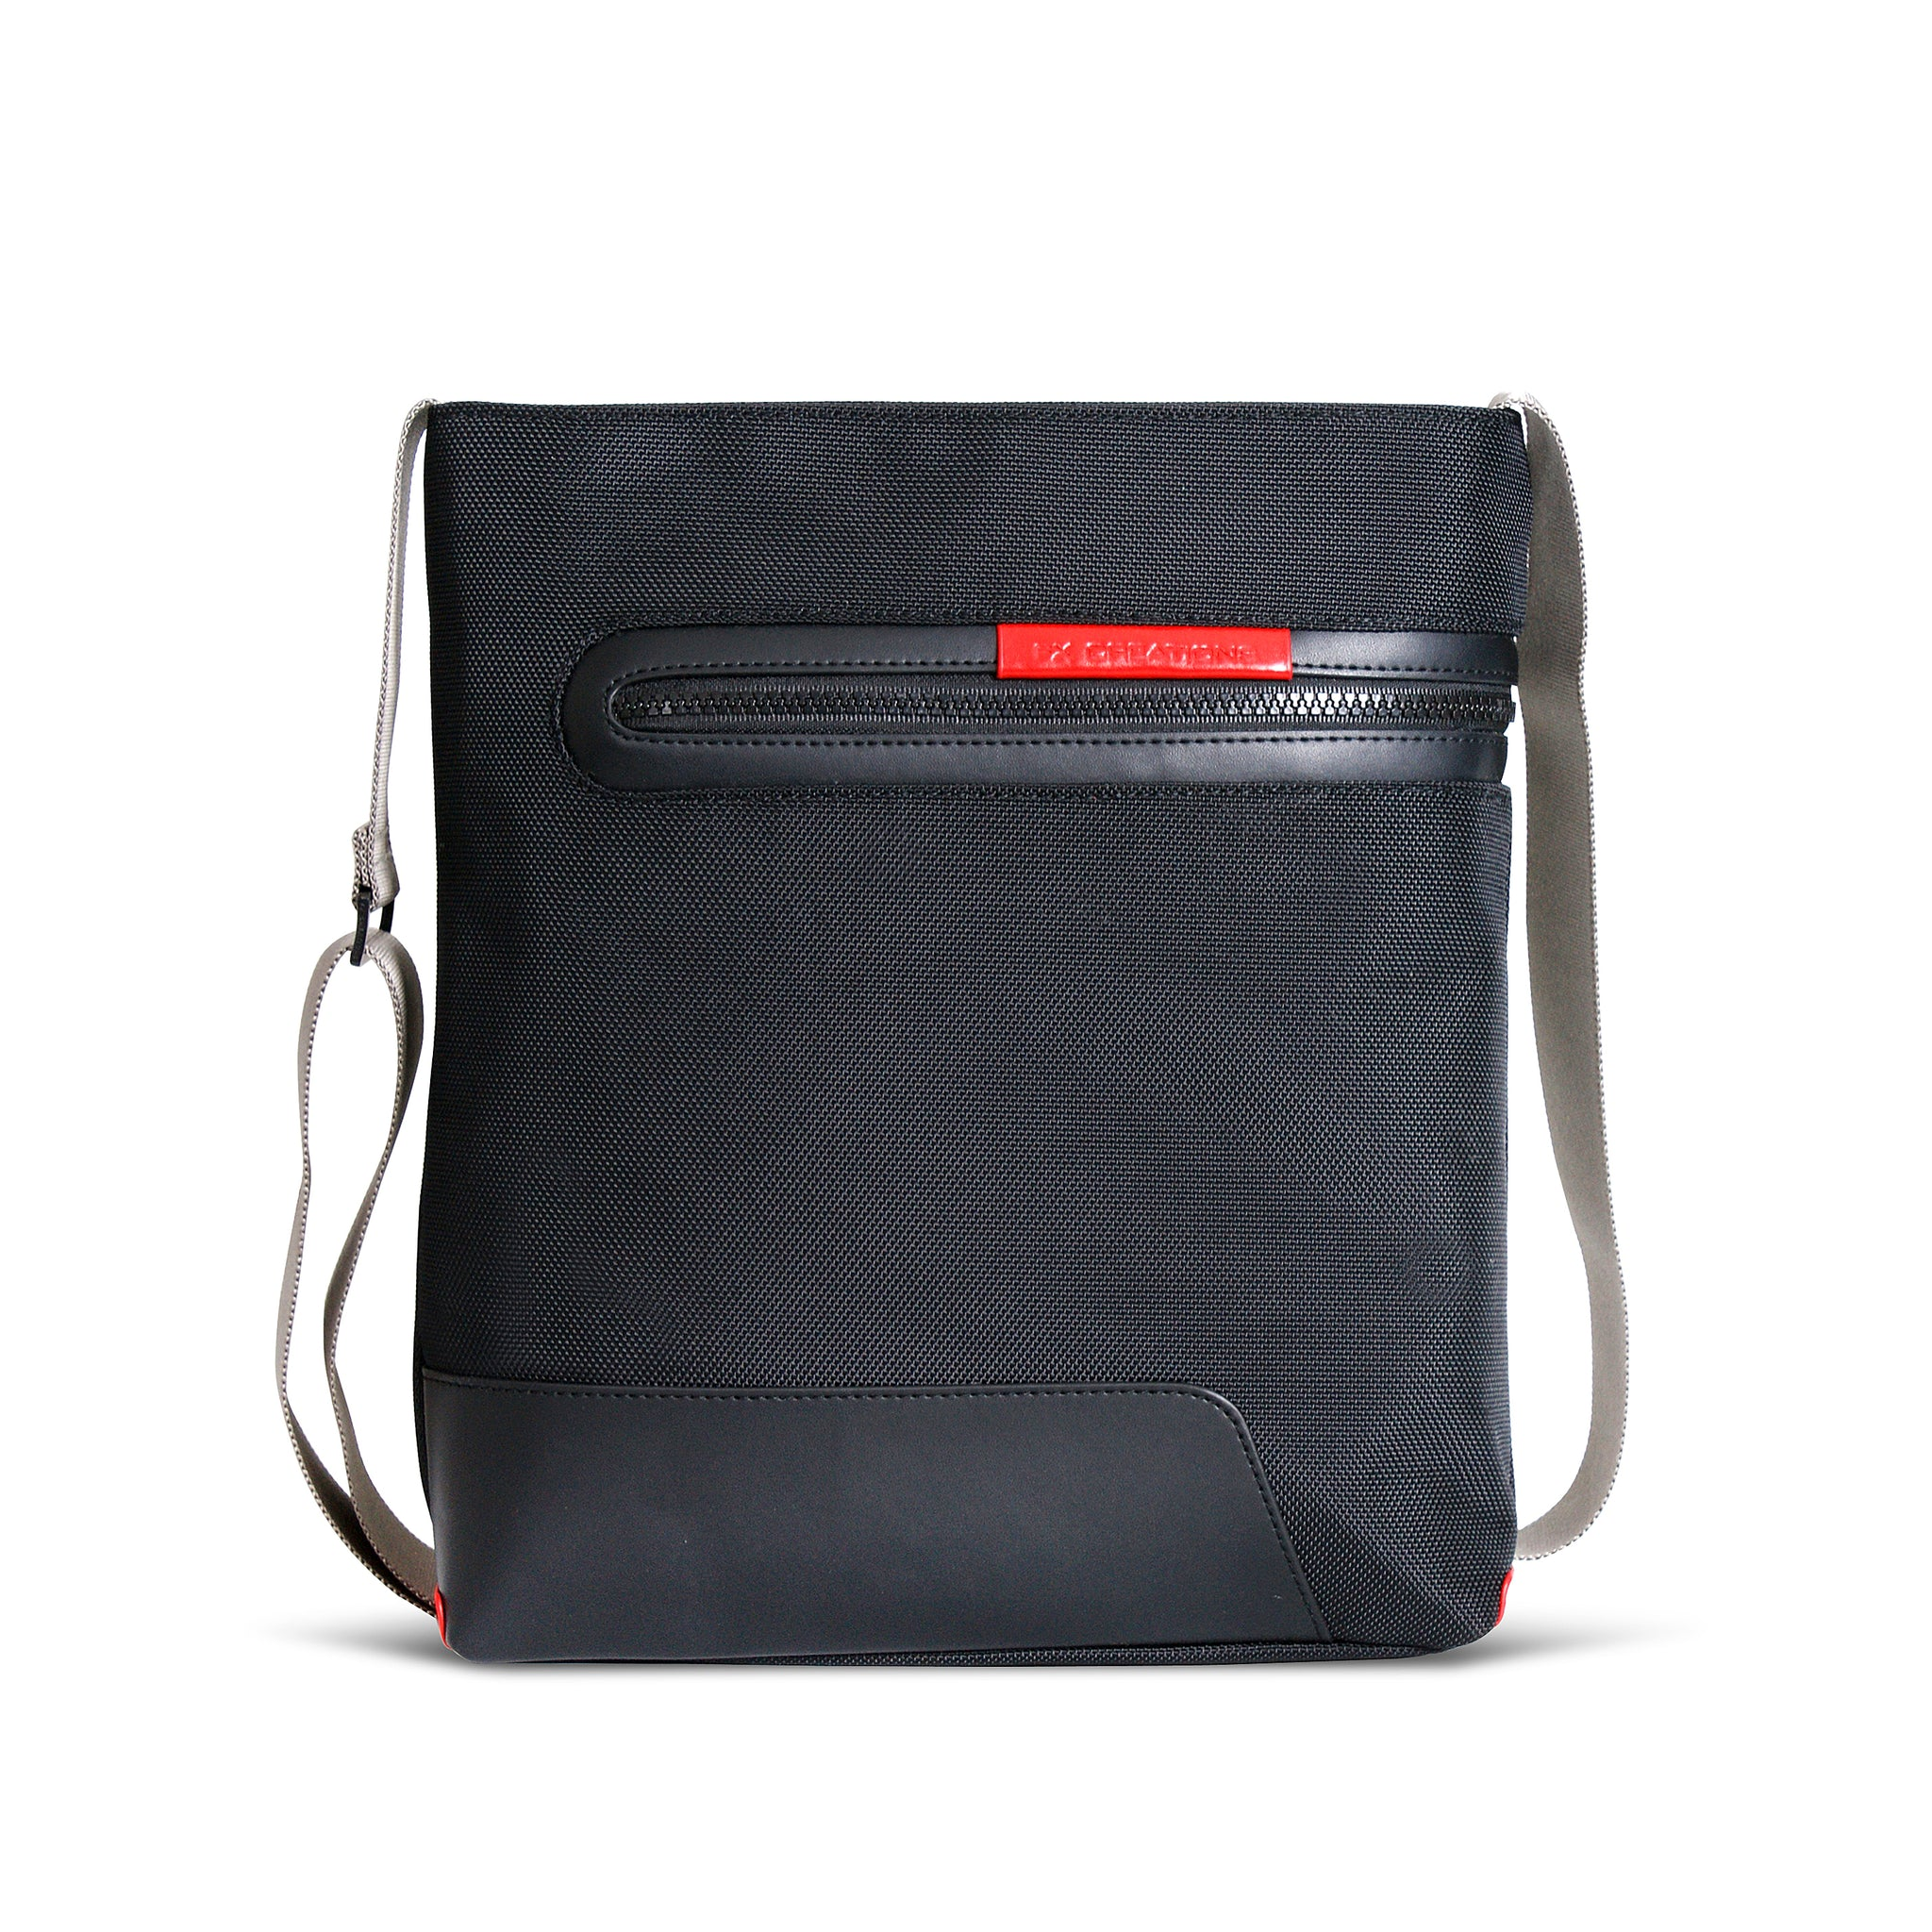 Shoulder Bag - FX Creations GTR Messenger Bag  | FX Creations Singapore